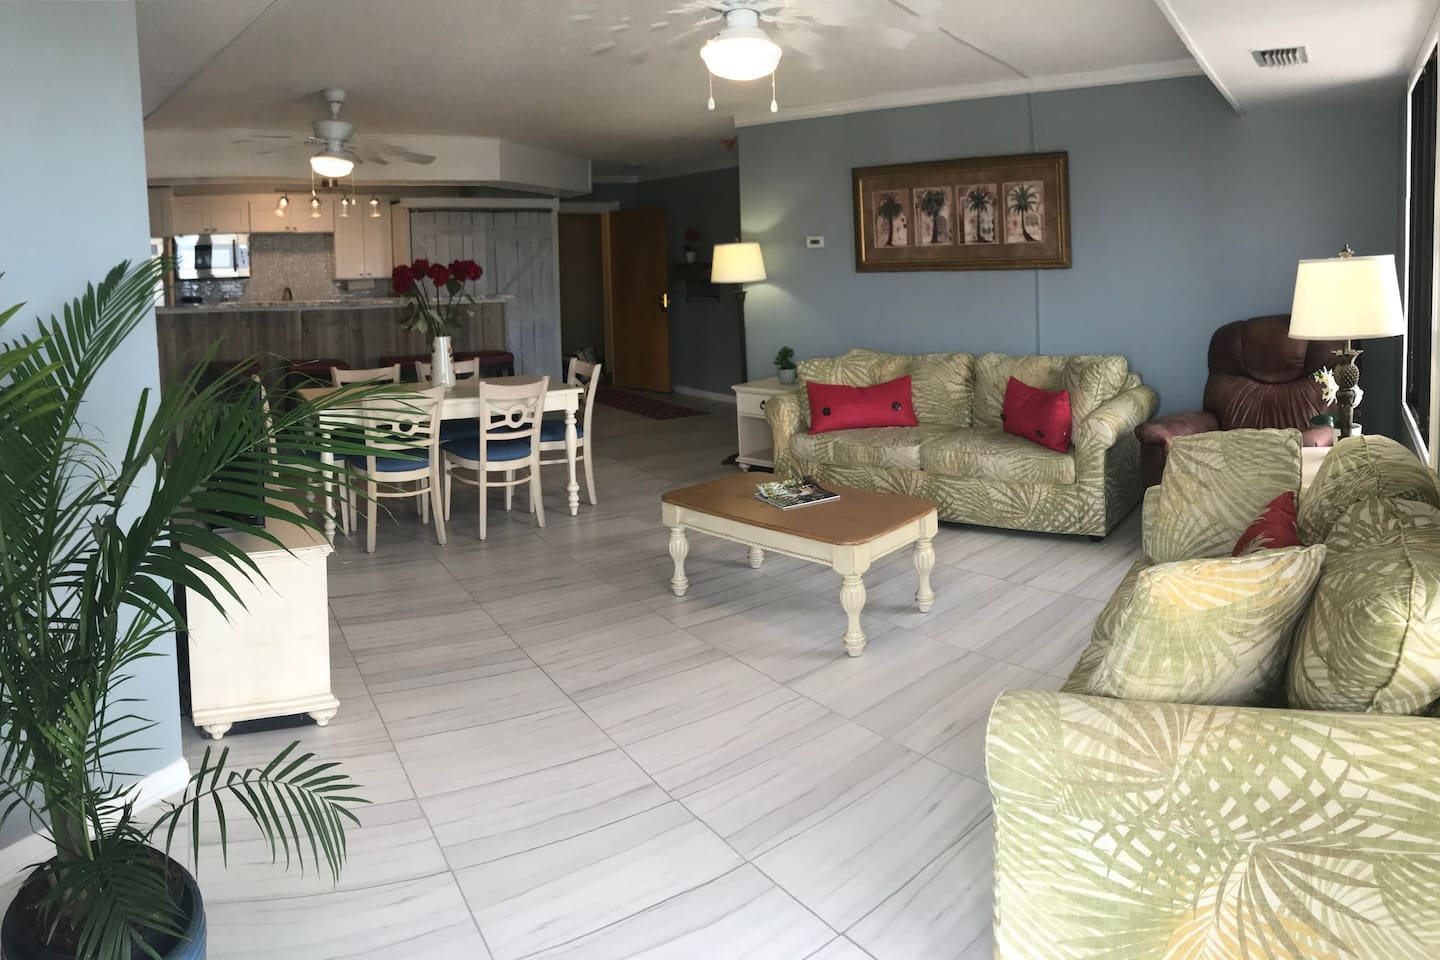 Living Room, Dining Area and Kitchen. LR equipped with Queen Sleeper Sofa, Loveseat and Arm Chair).